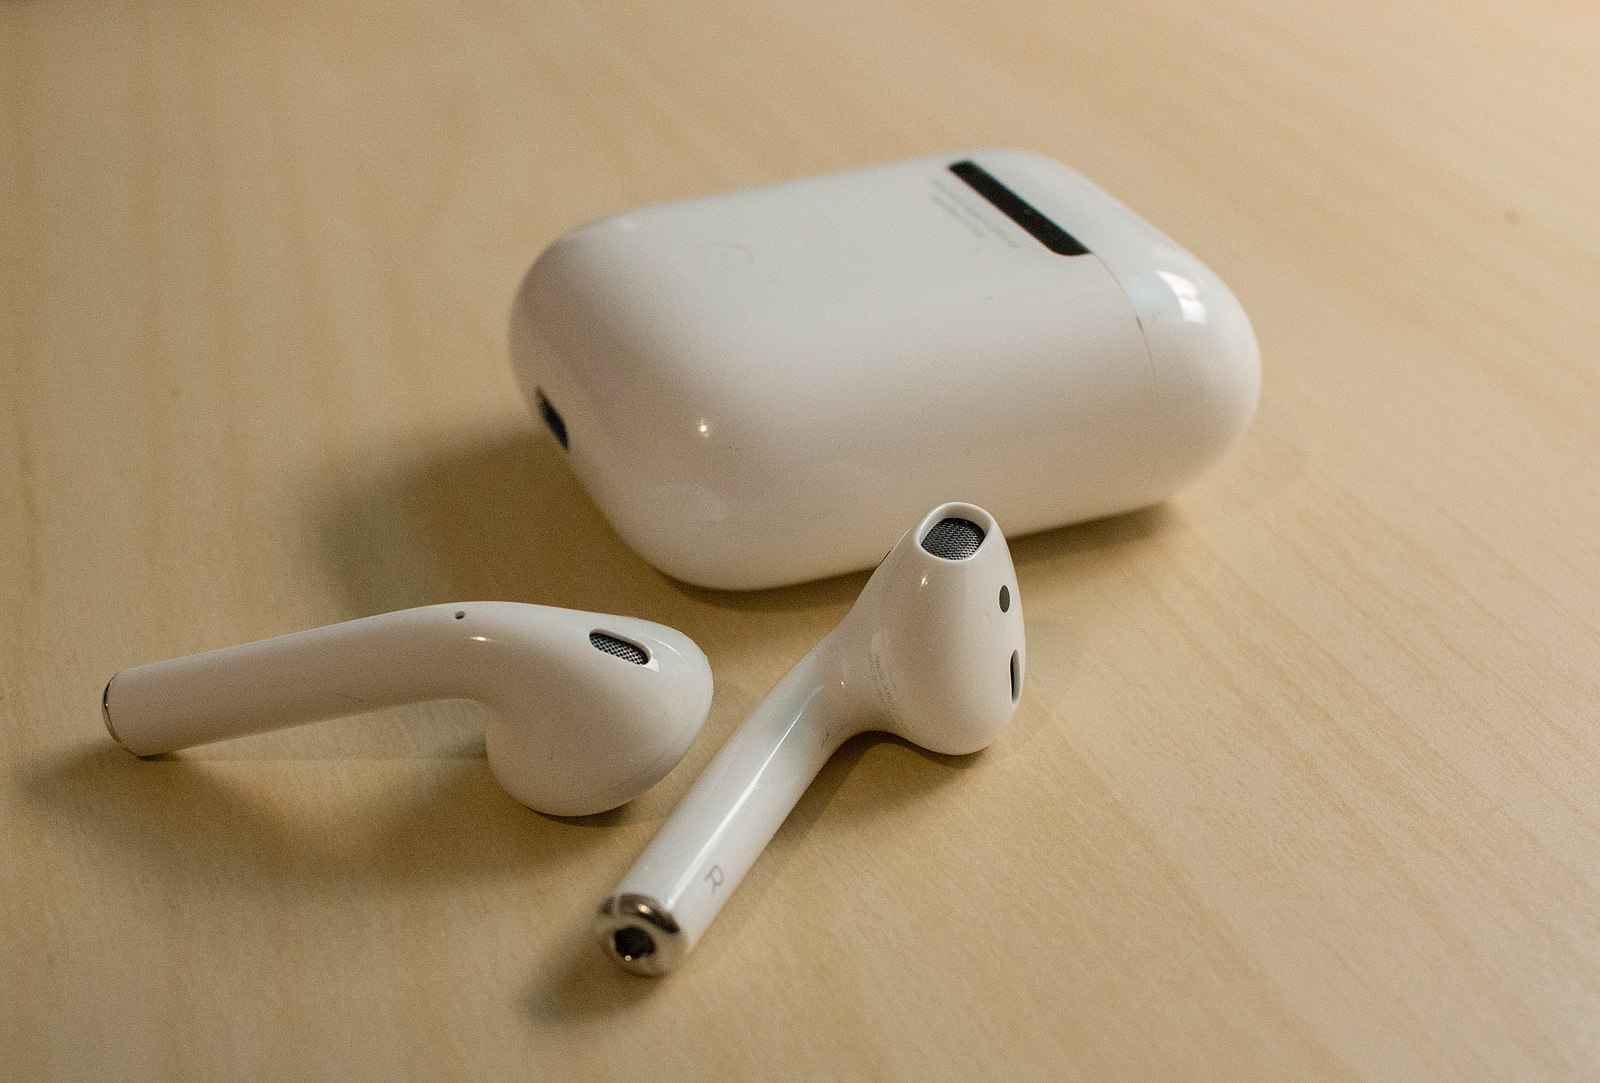 Difference Between AirPods 1 and AirPods 2